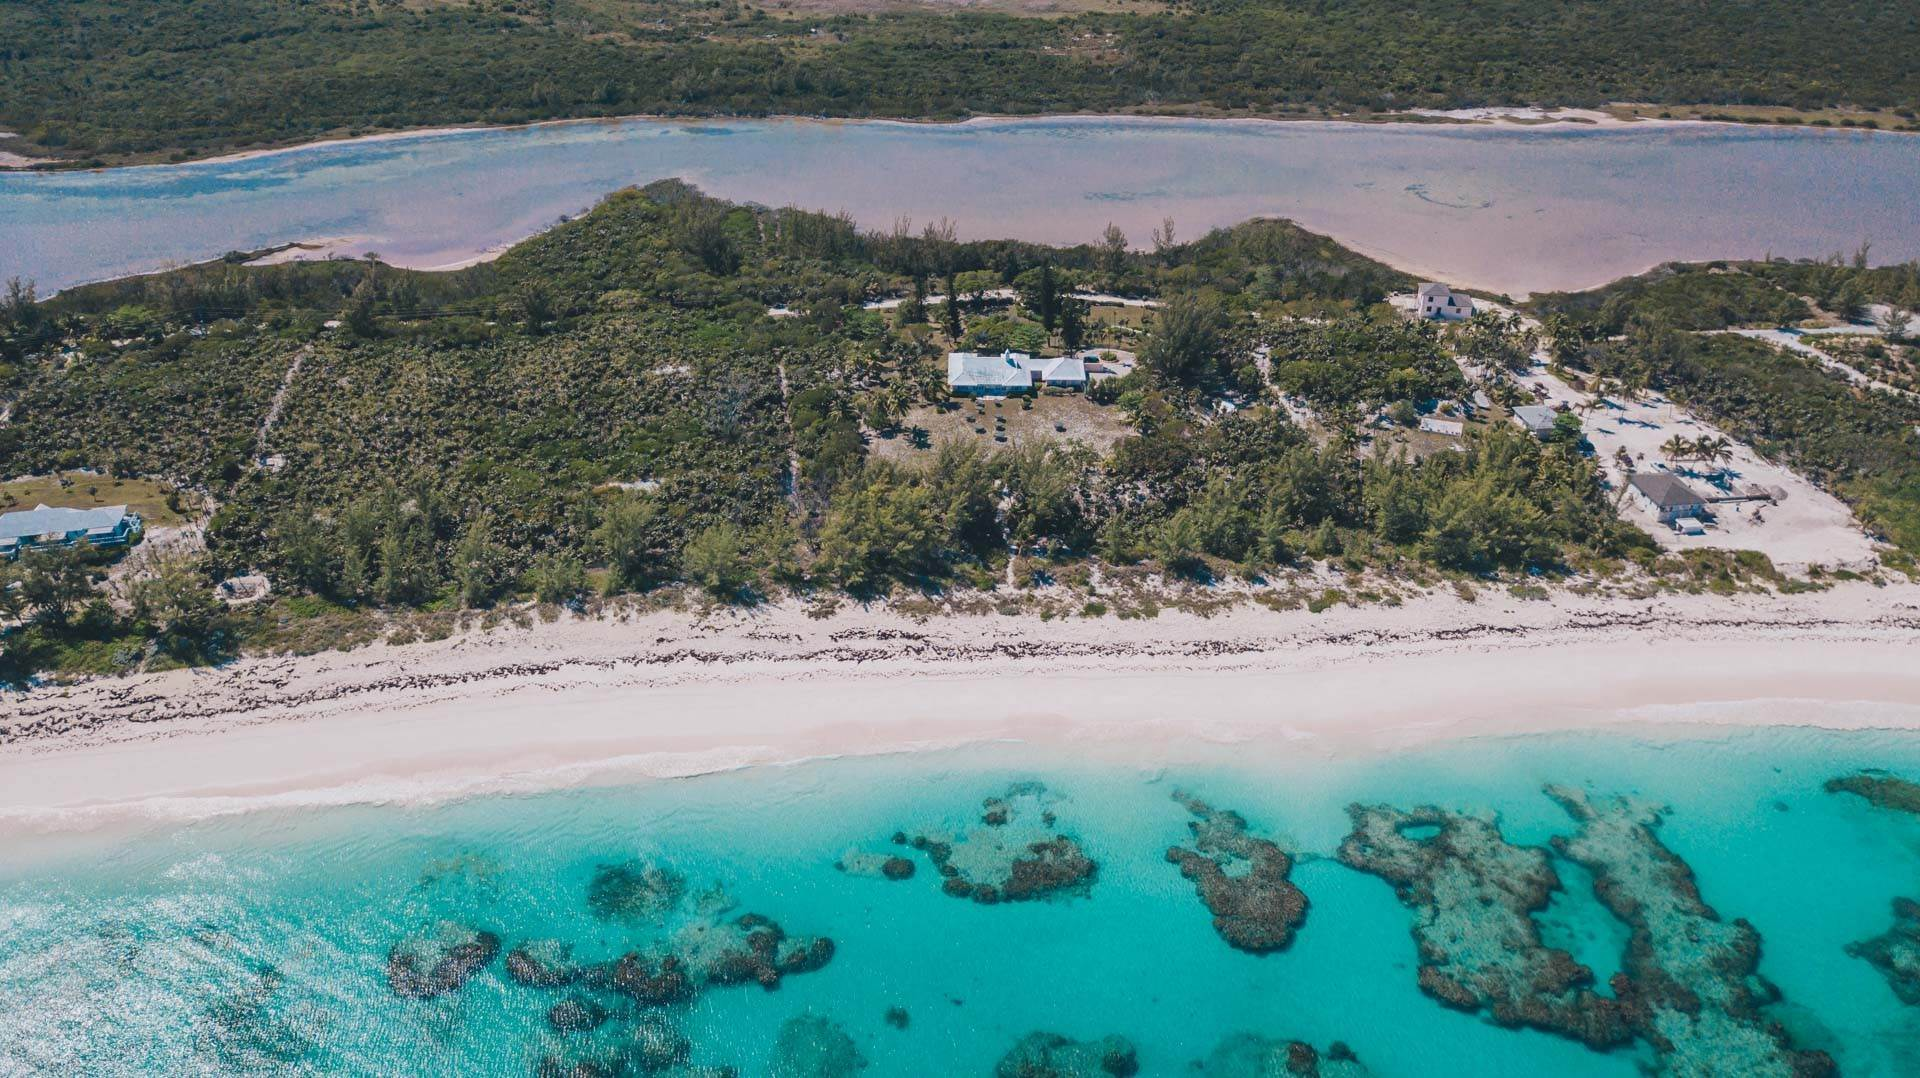 Single Family Homes for Sale at Stunning Beach Front Property Double Bay Eleuthera With Elegant Island Home - MLS 41084 Double Bay, Eleuthera, Bahamas